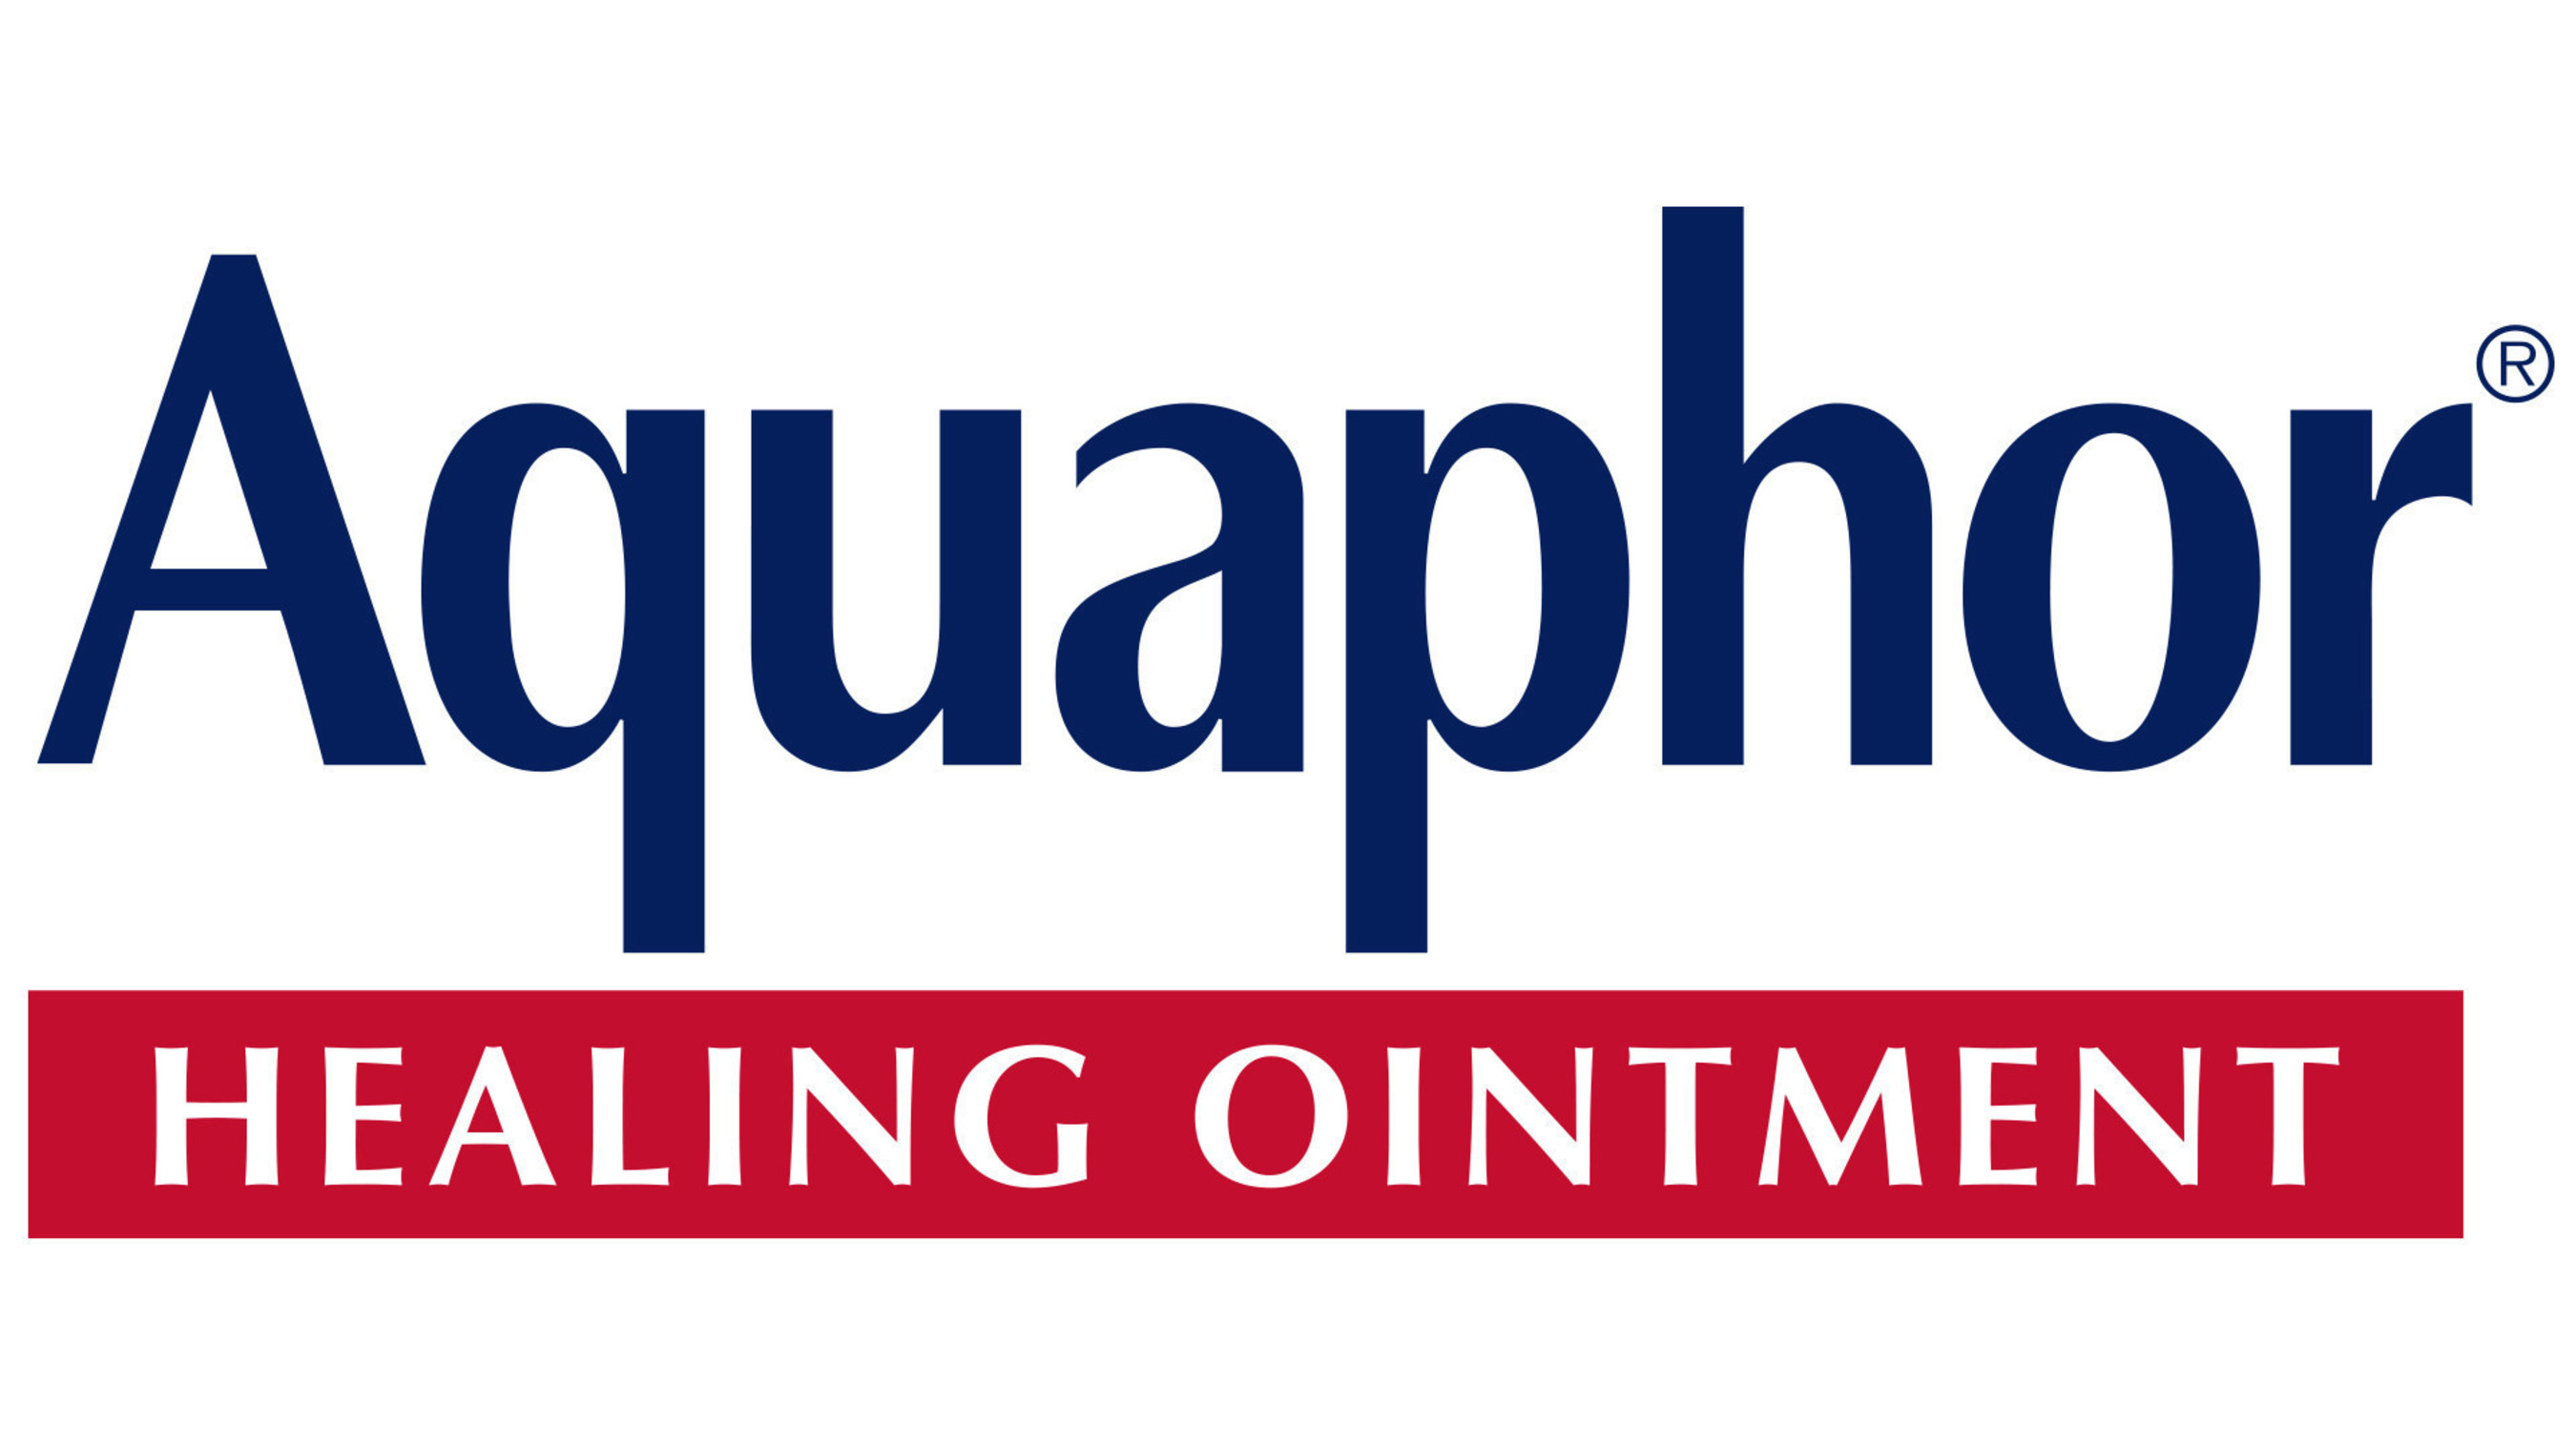 Aquaphor Healing Ointment Adds Convenience And Simplicity To Its Resume